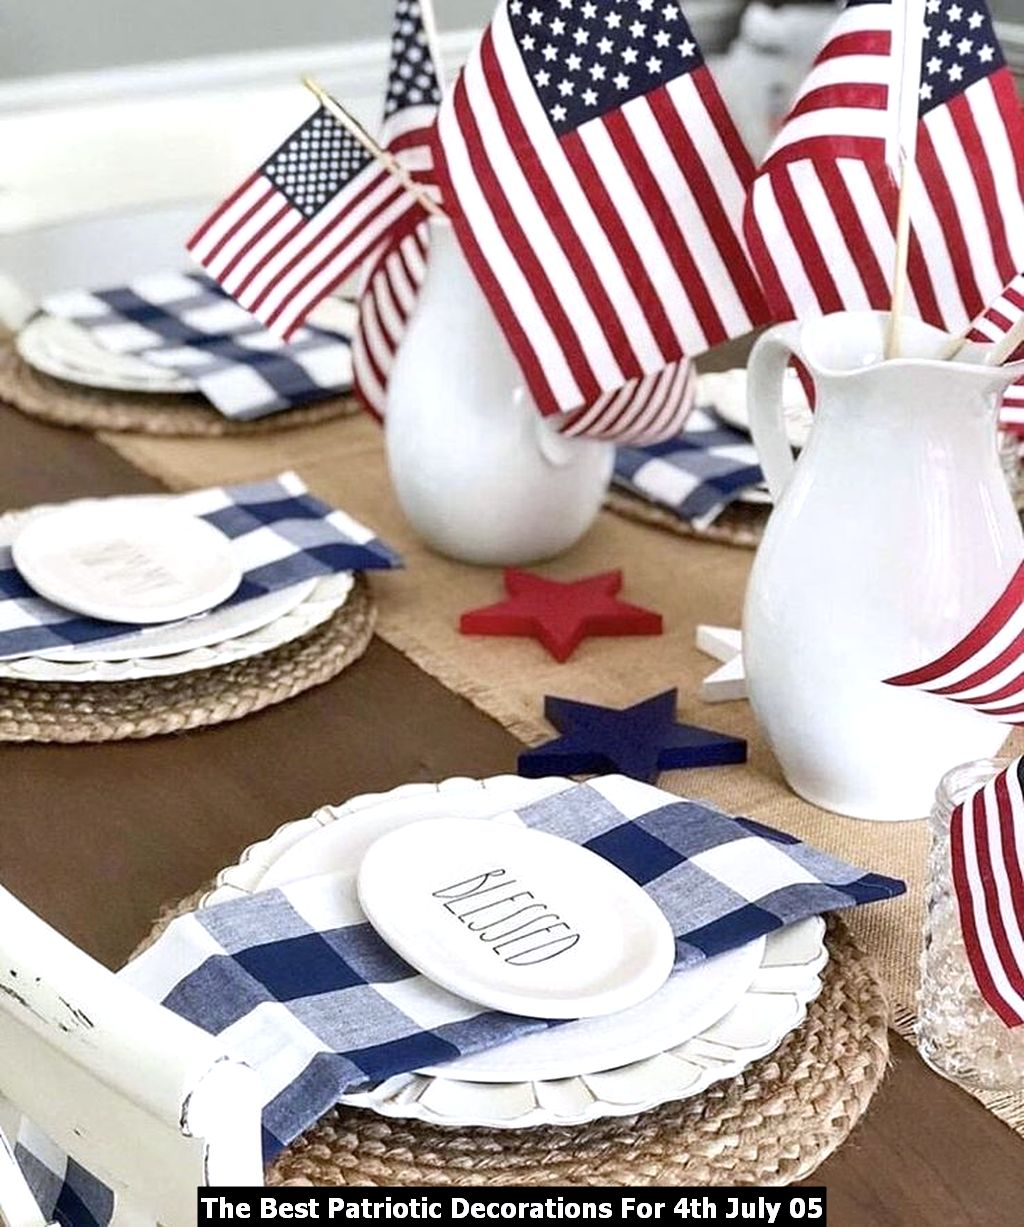 The Best Patriotic Decorations For 4th July 05